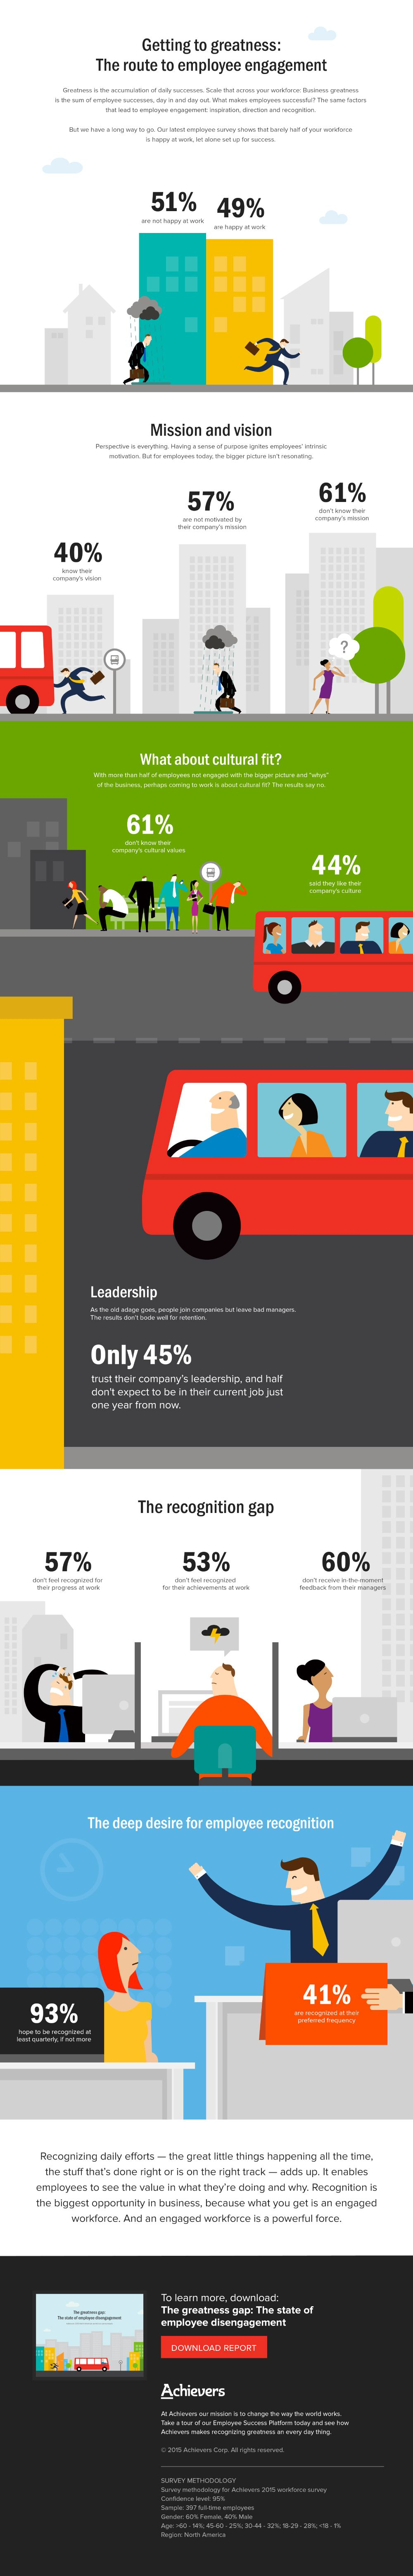 Getting to greatness: The route to employee engagement #Infographic